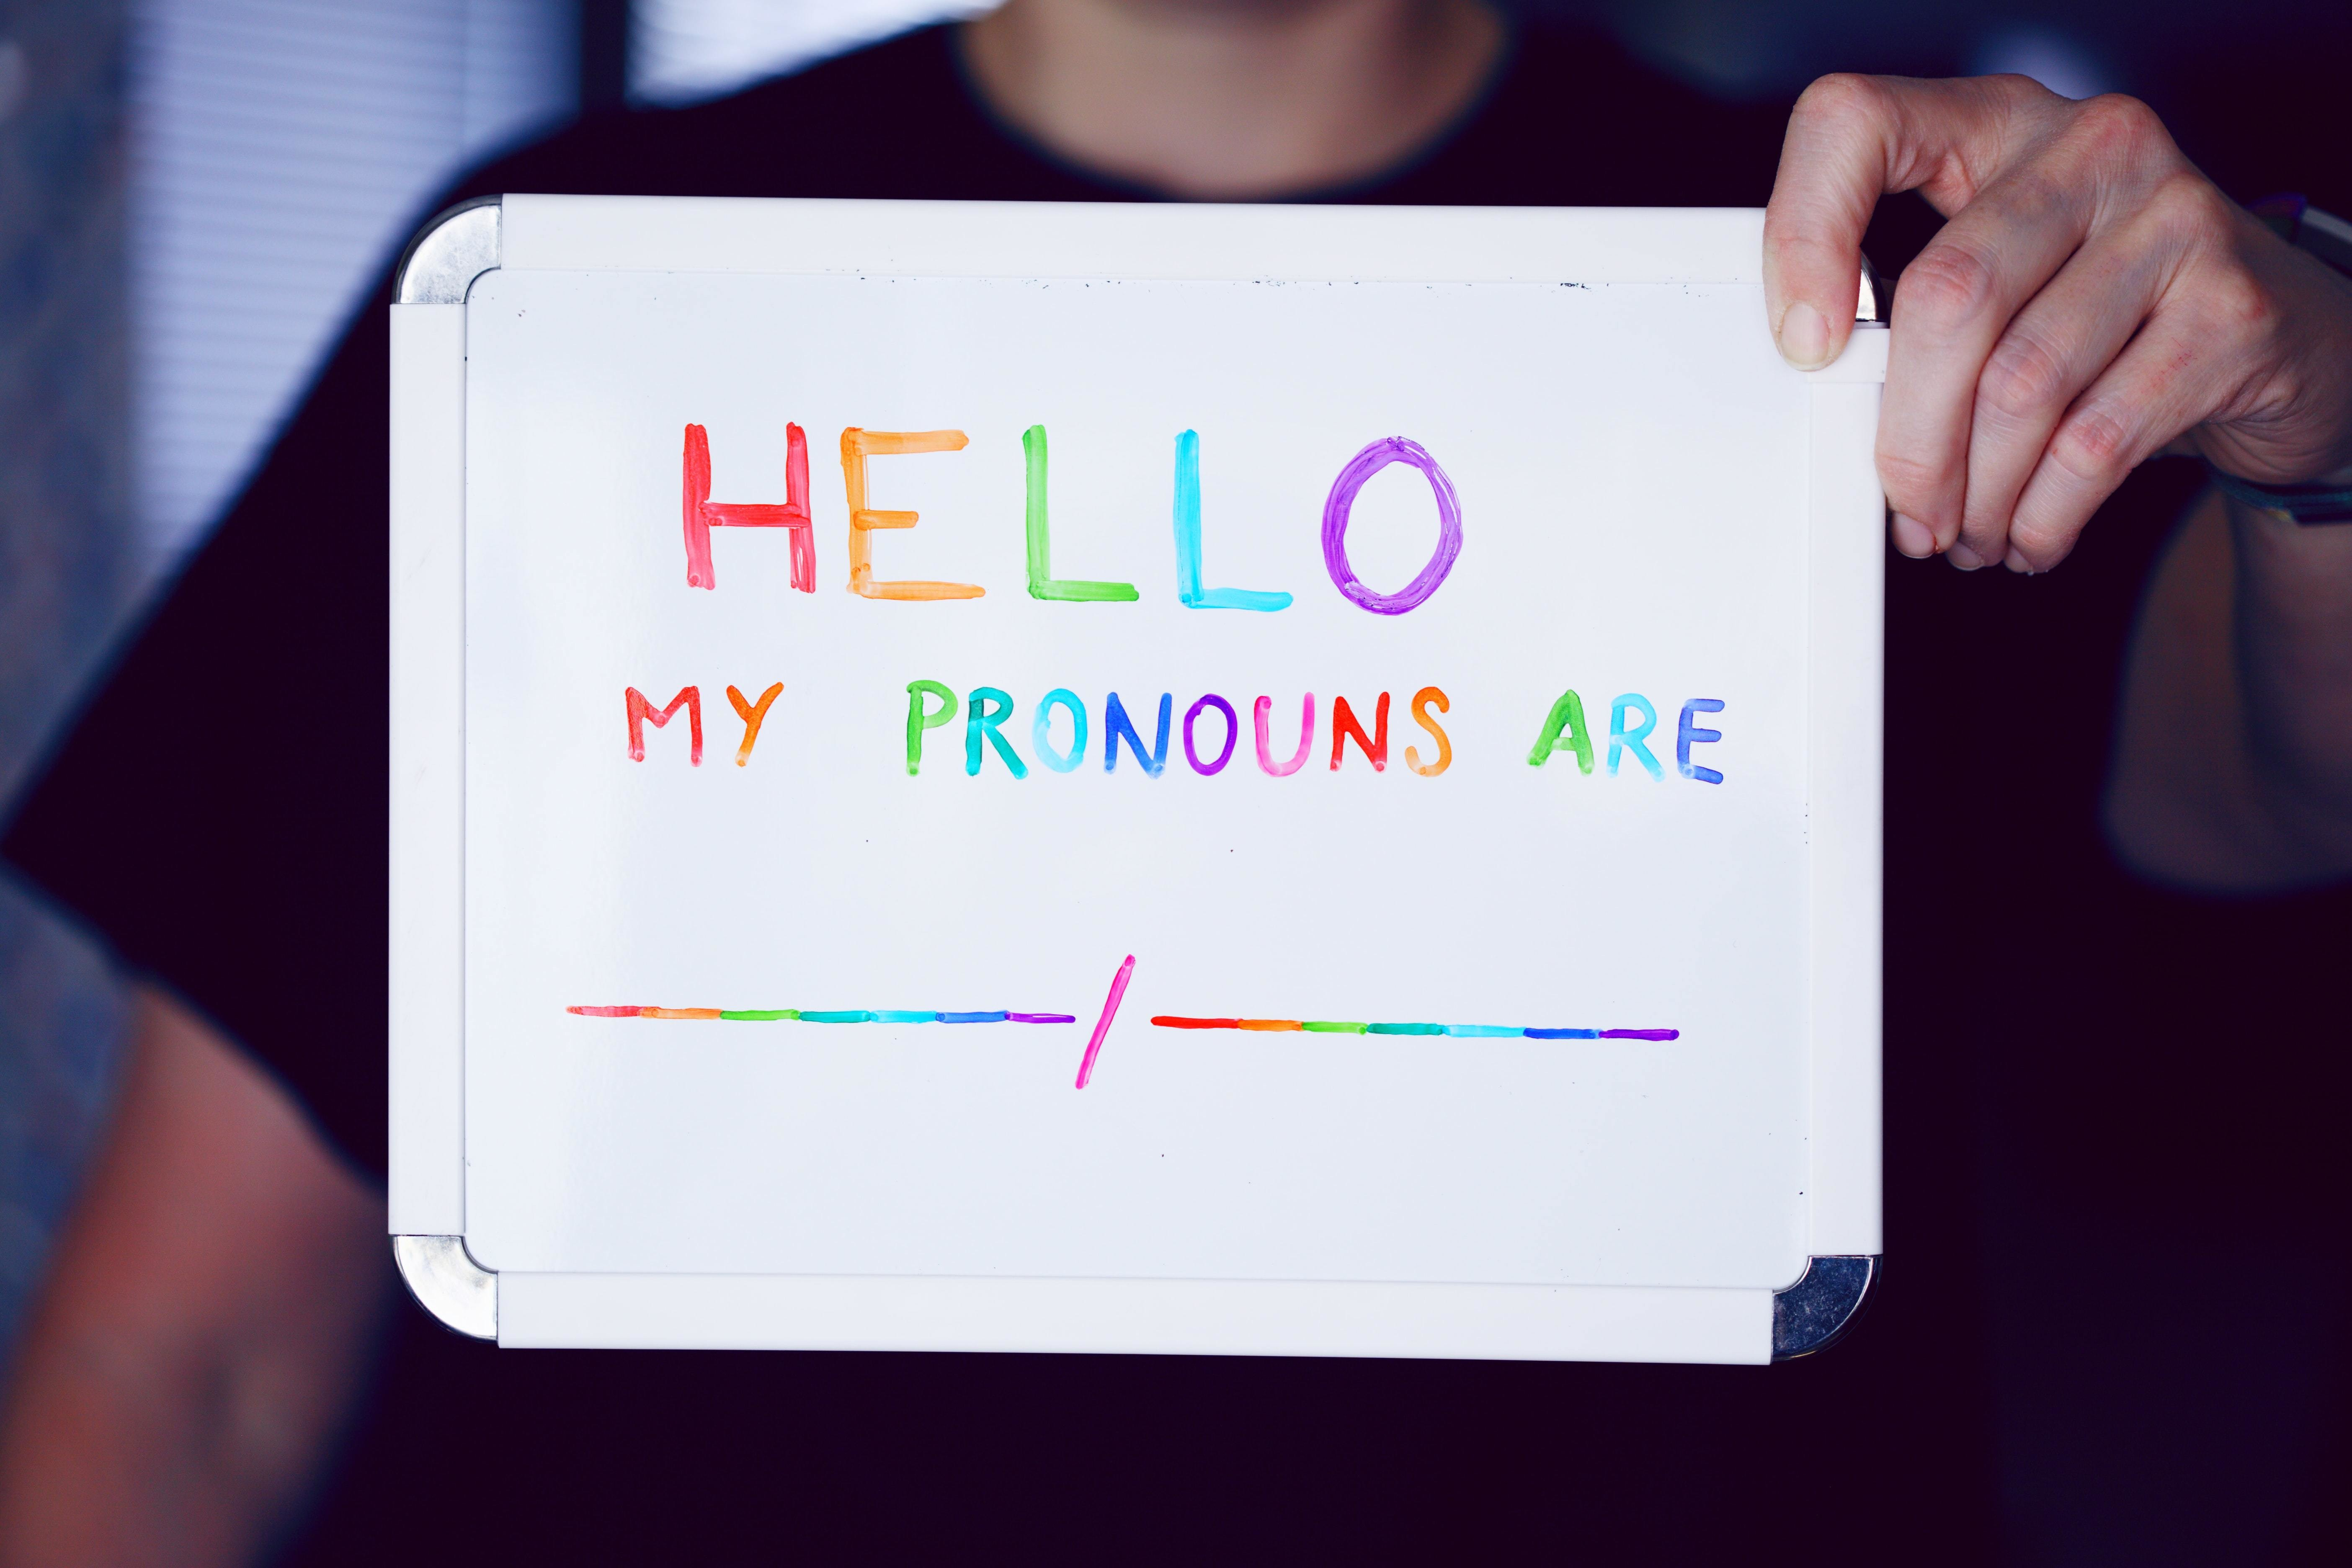 a picture of a person holding up a sign telling people what pronouns they prefer to use